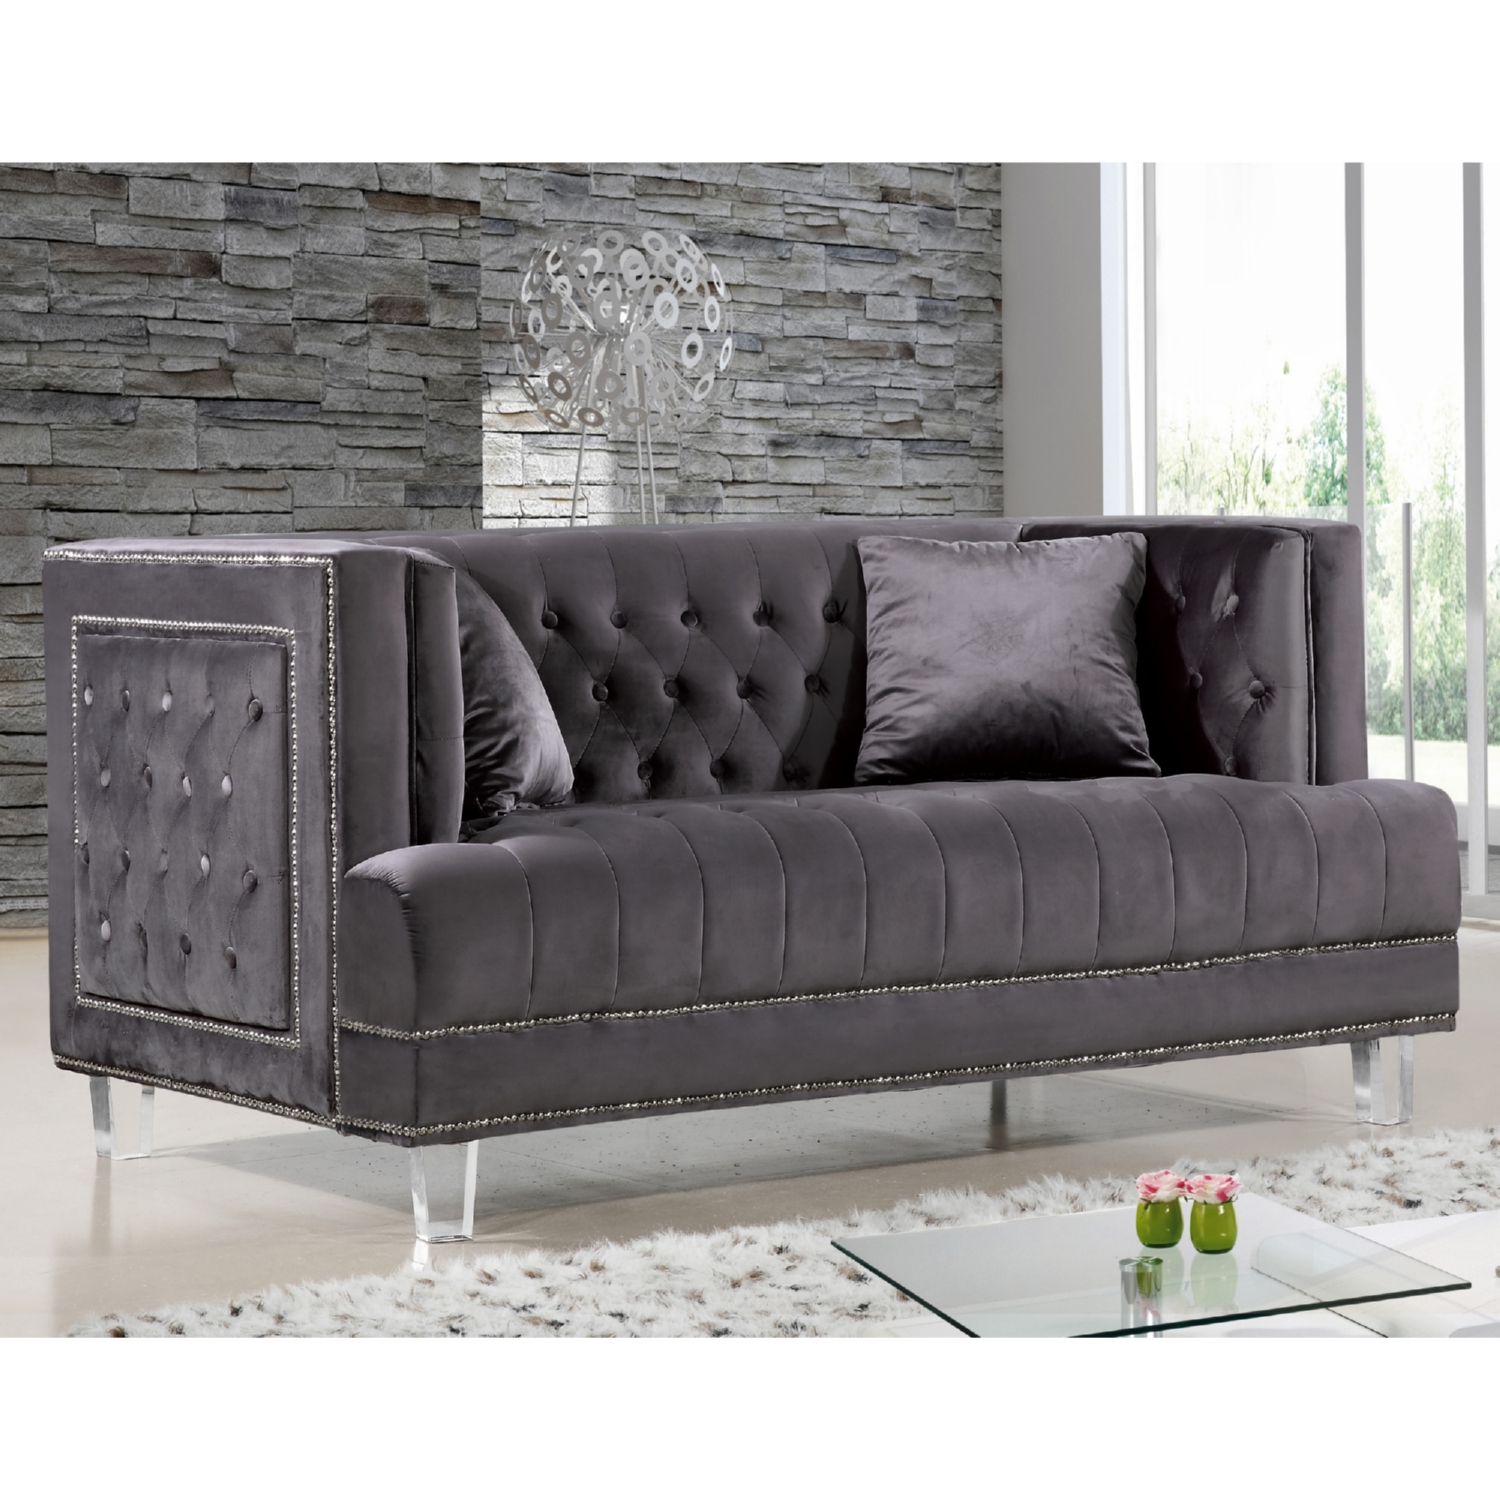 gray velvet sofa with nailheads the brick cindy crawford reclining tufted nailhead meridian furniture 609grey l lucas